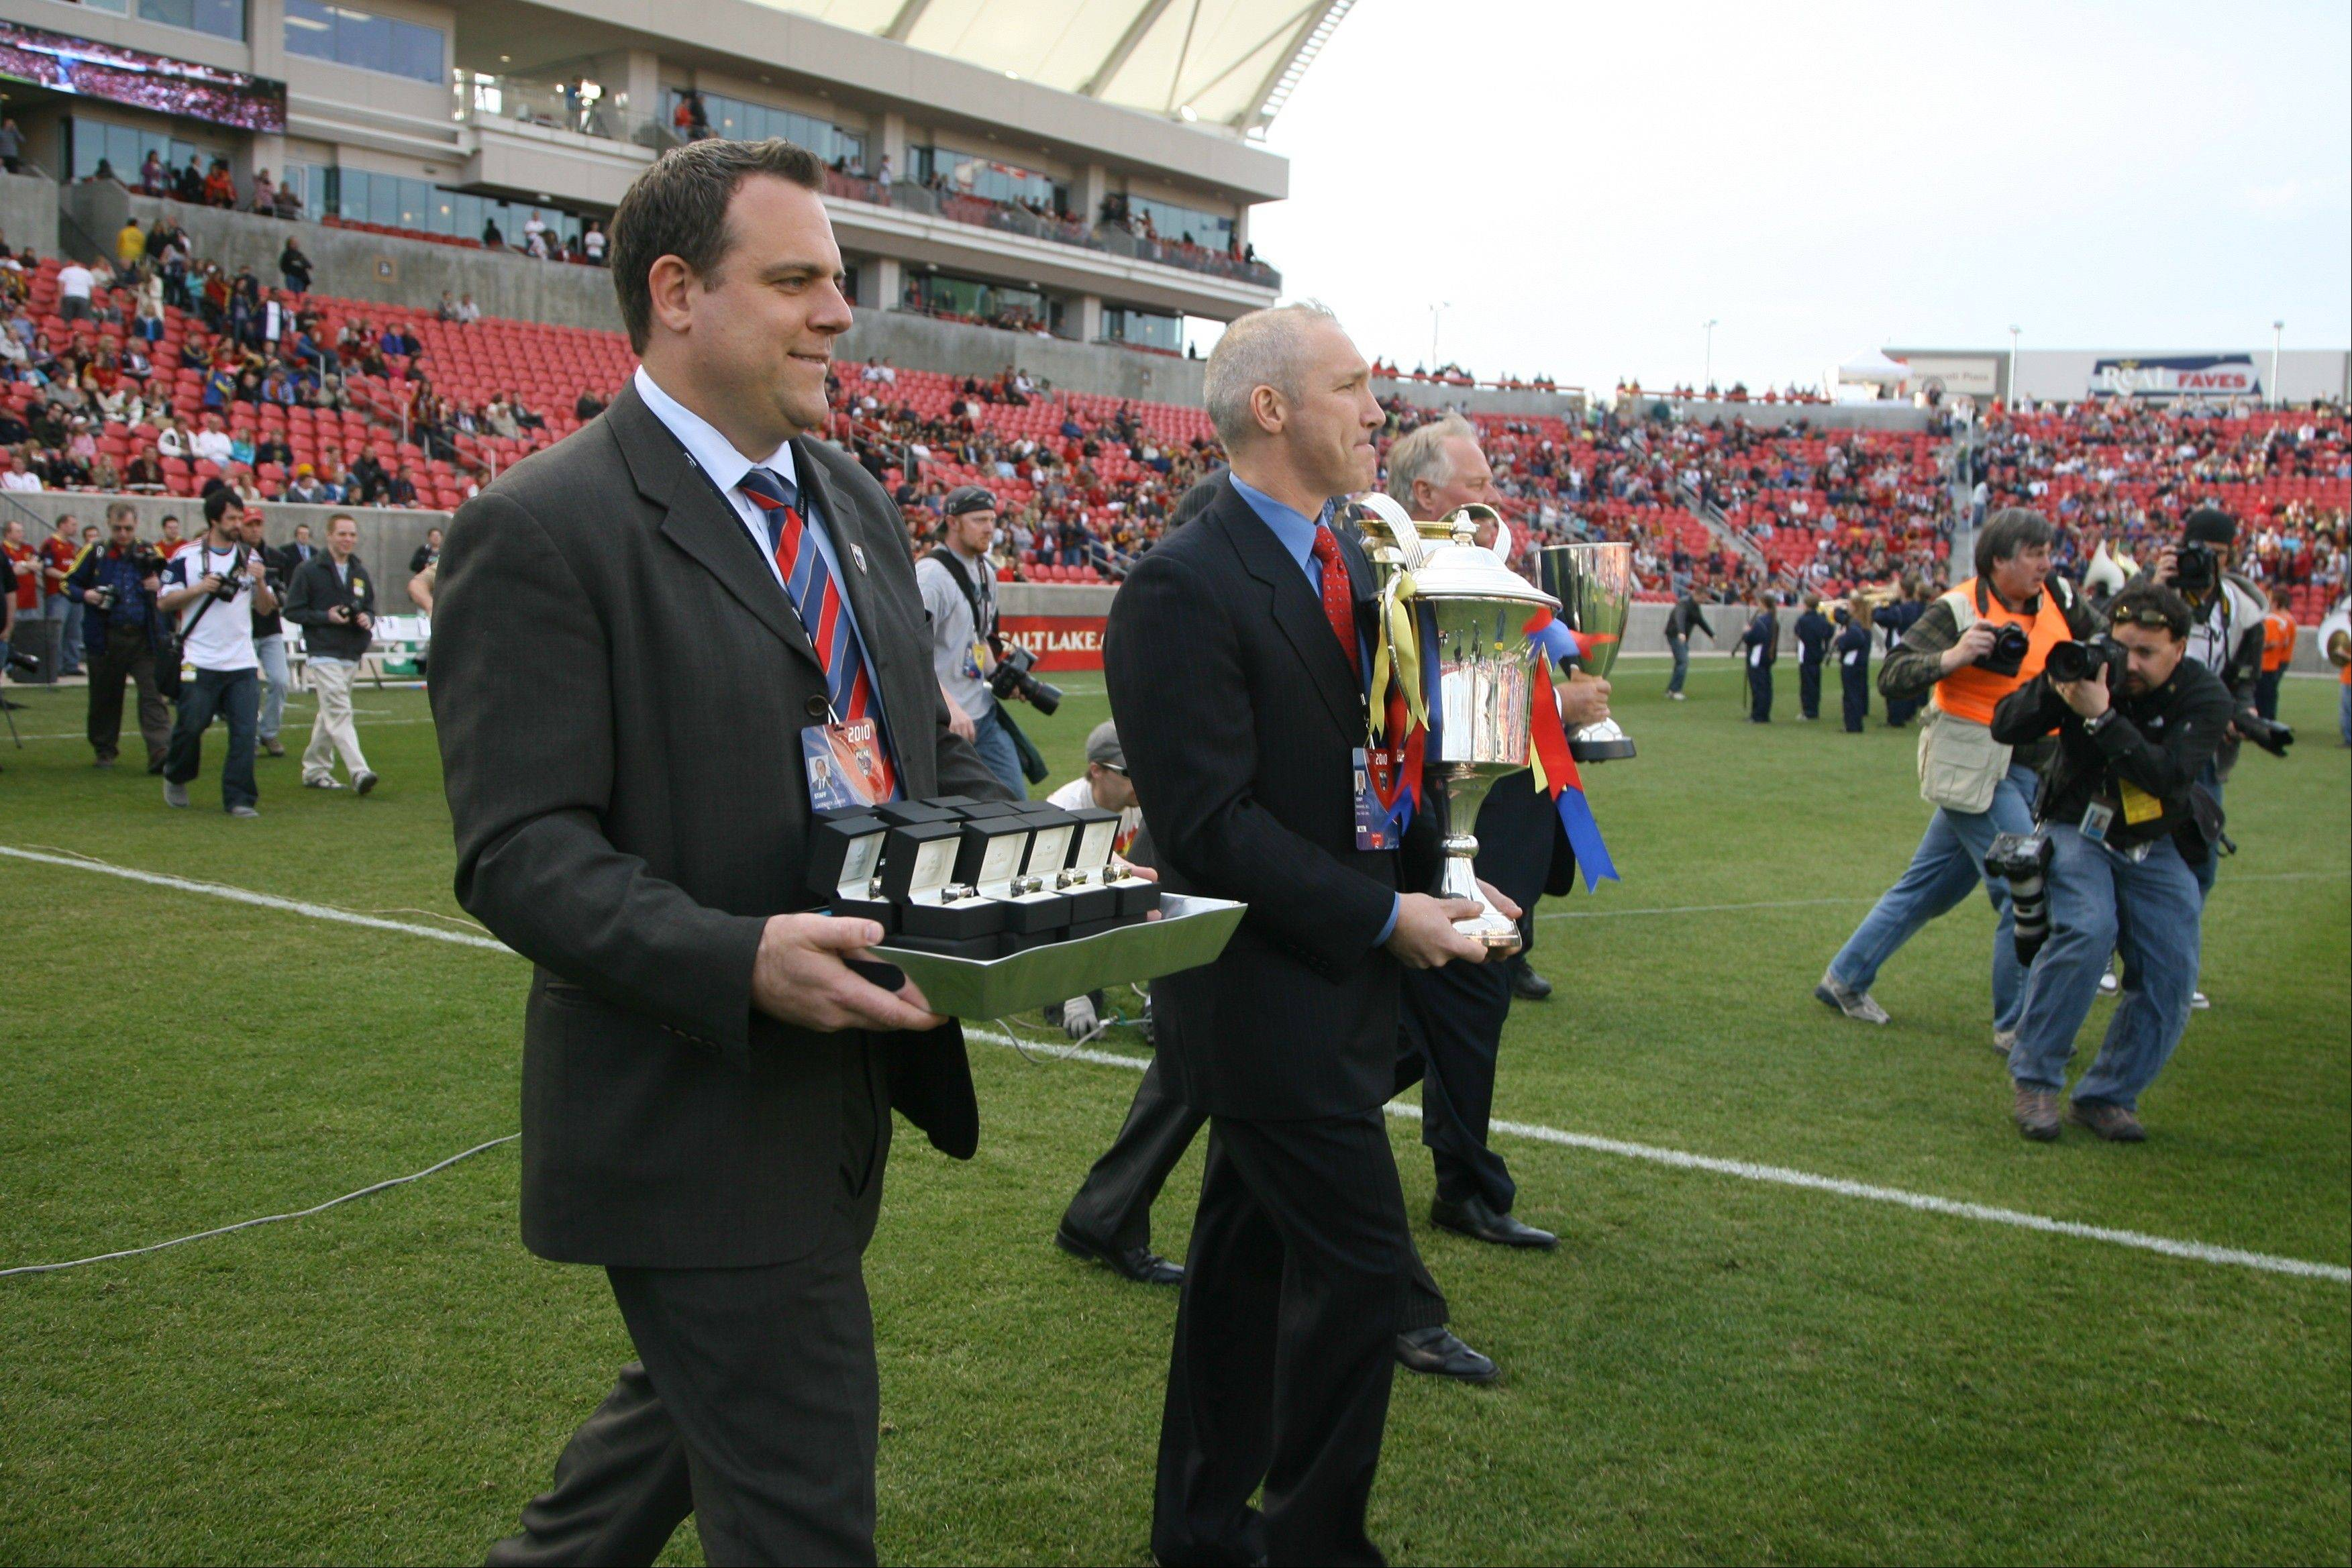 Real Salt Lake has made a habit of winning since Elmhurst native Garth Lagerwey, left, took over as general manager in 2007. His roster includes several players with ties to the Chicago suburbs.